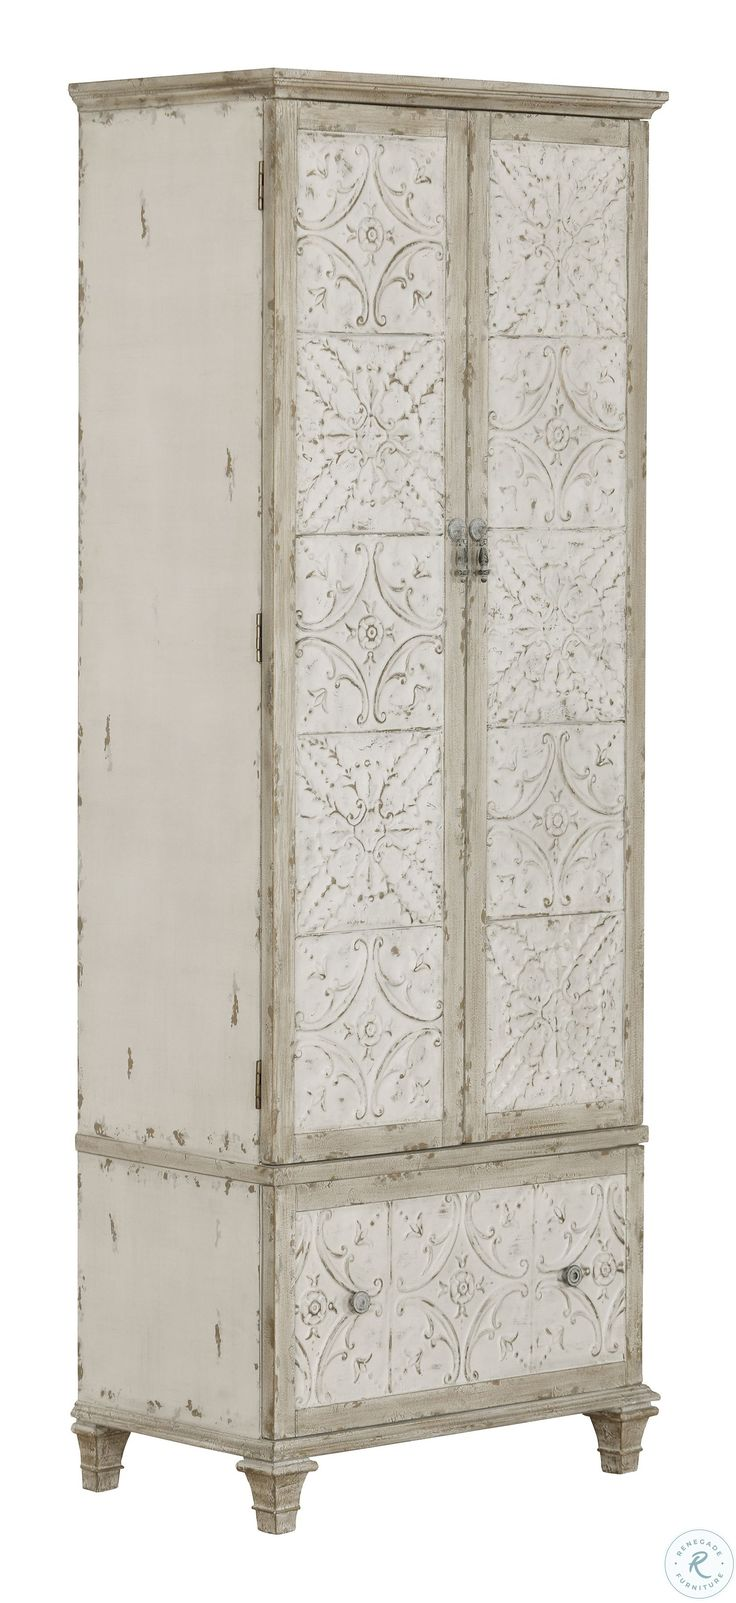 Distressed Cream Tall Pantry in 2020 Tall pantry